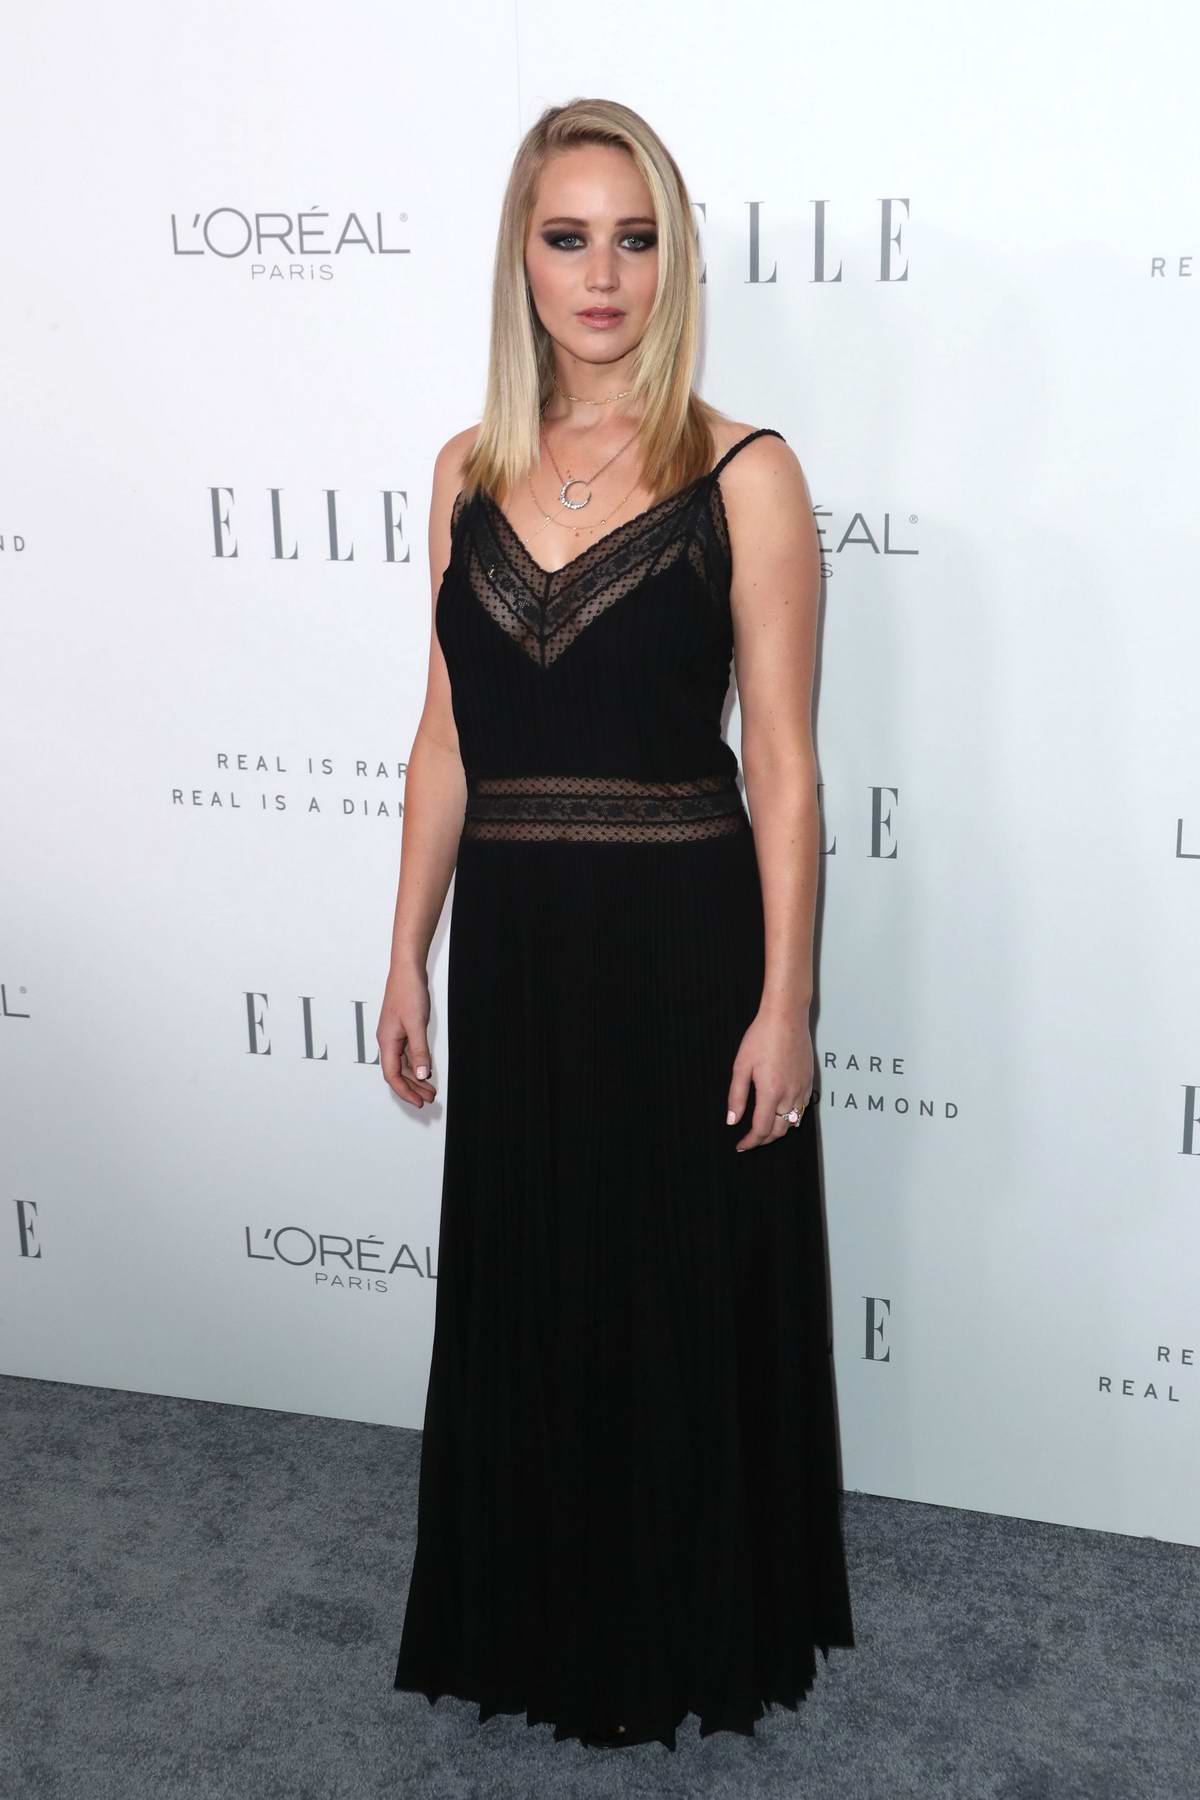 Jennifer Lawrence at the Elle's 24th Annual Women in Hollywood Celebration in Los Angeles